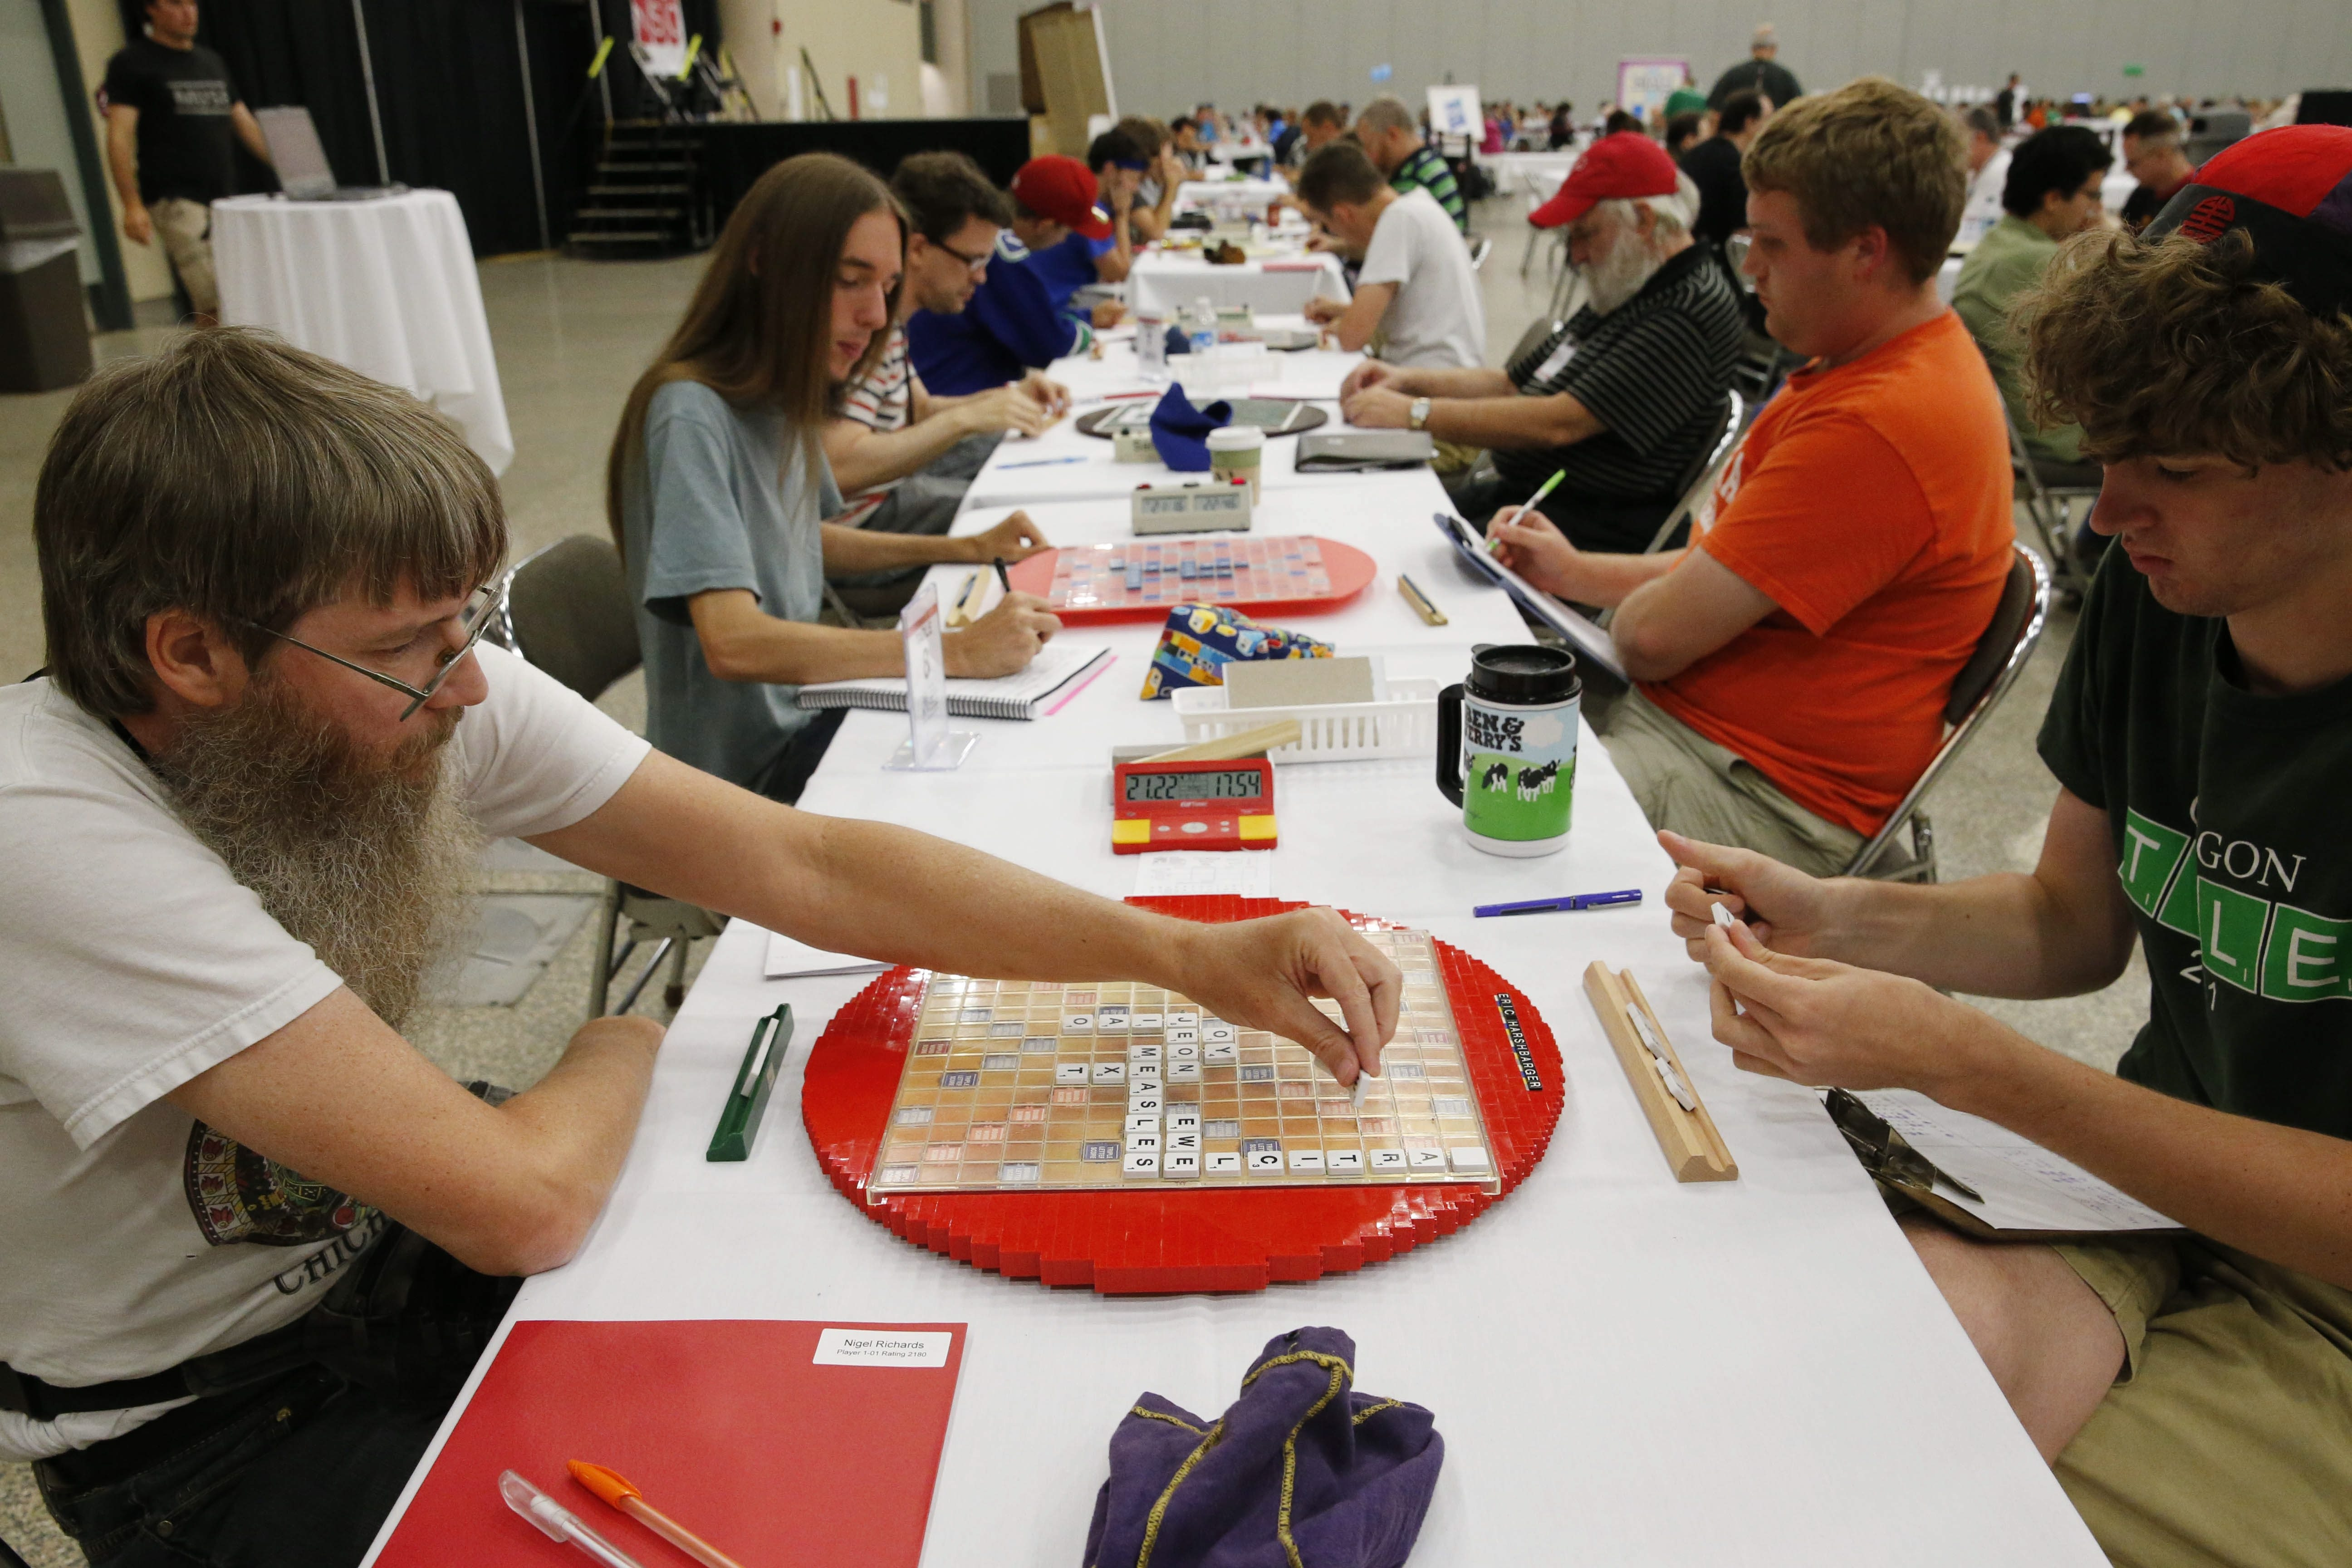 Nigel Richards, left, plays a word during a game in the 25th National Scrabble Championships at the Buffalo Niagara Convention Center on Saturday. Richards, a New Zealander who lives in Malaysia, has won the past four championships.